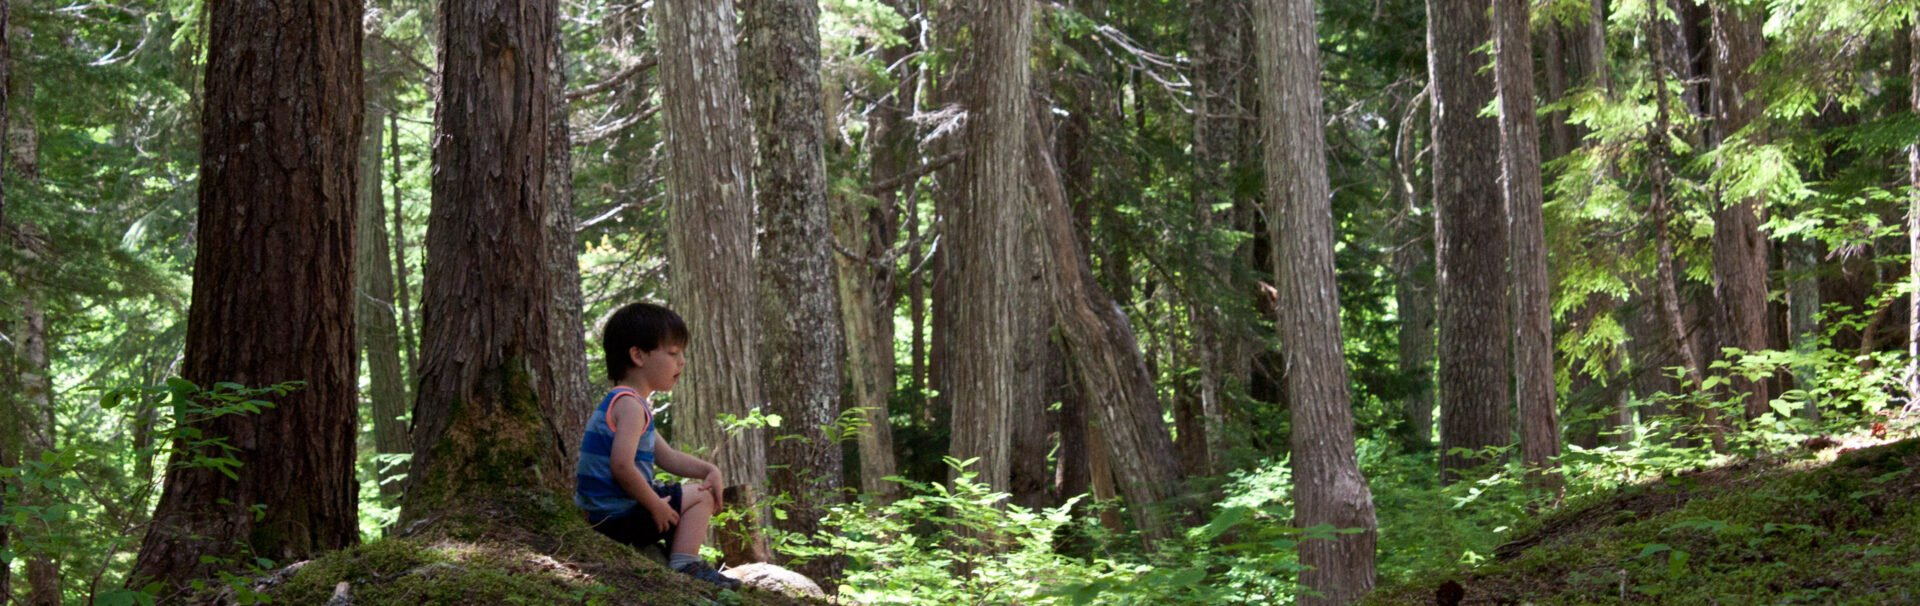 10 Hikes to take your kids on this summer